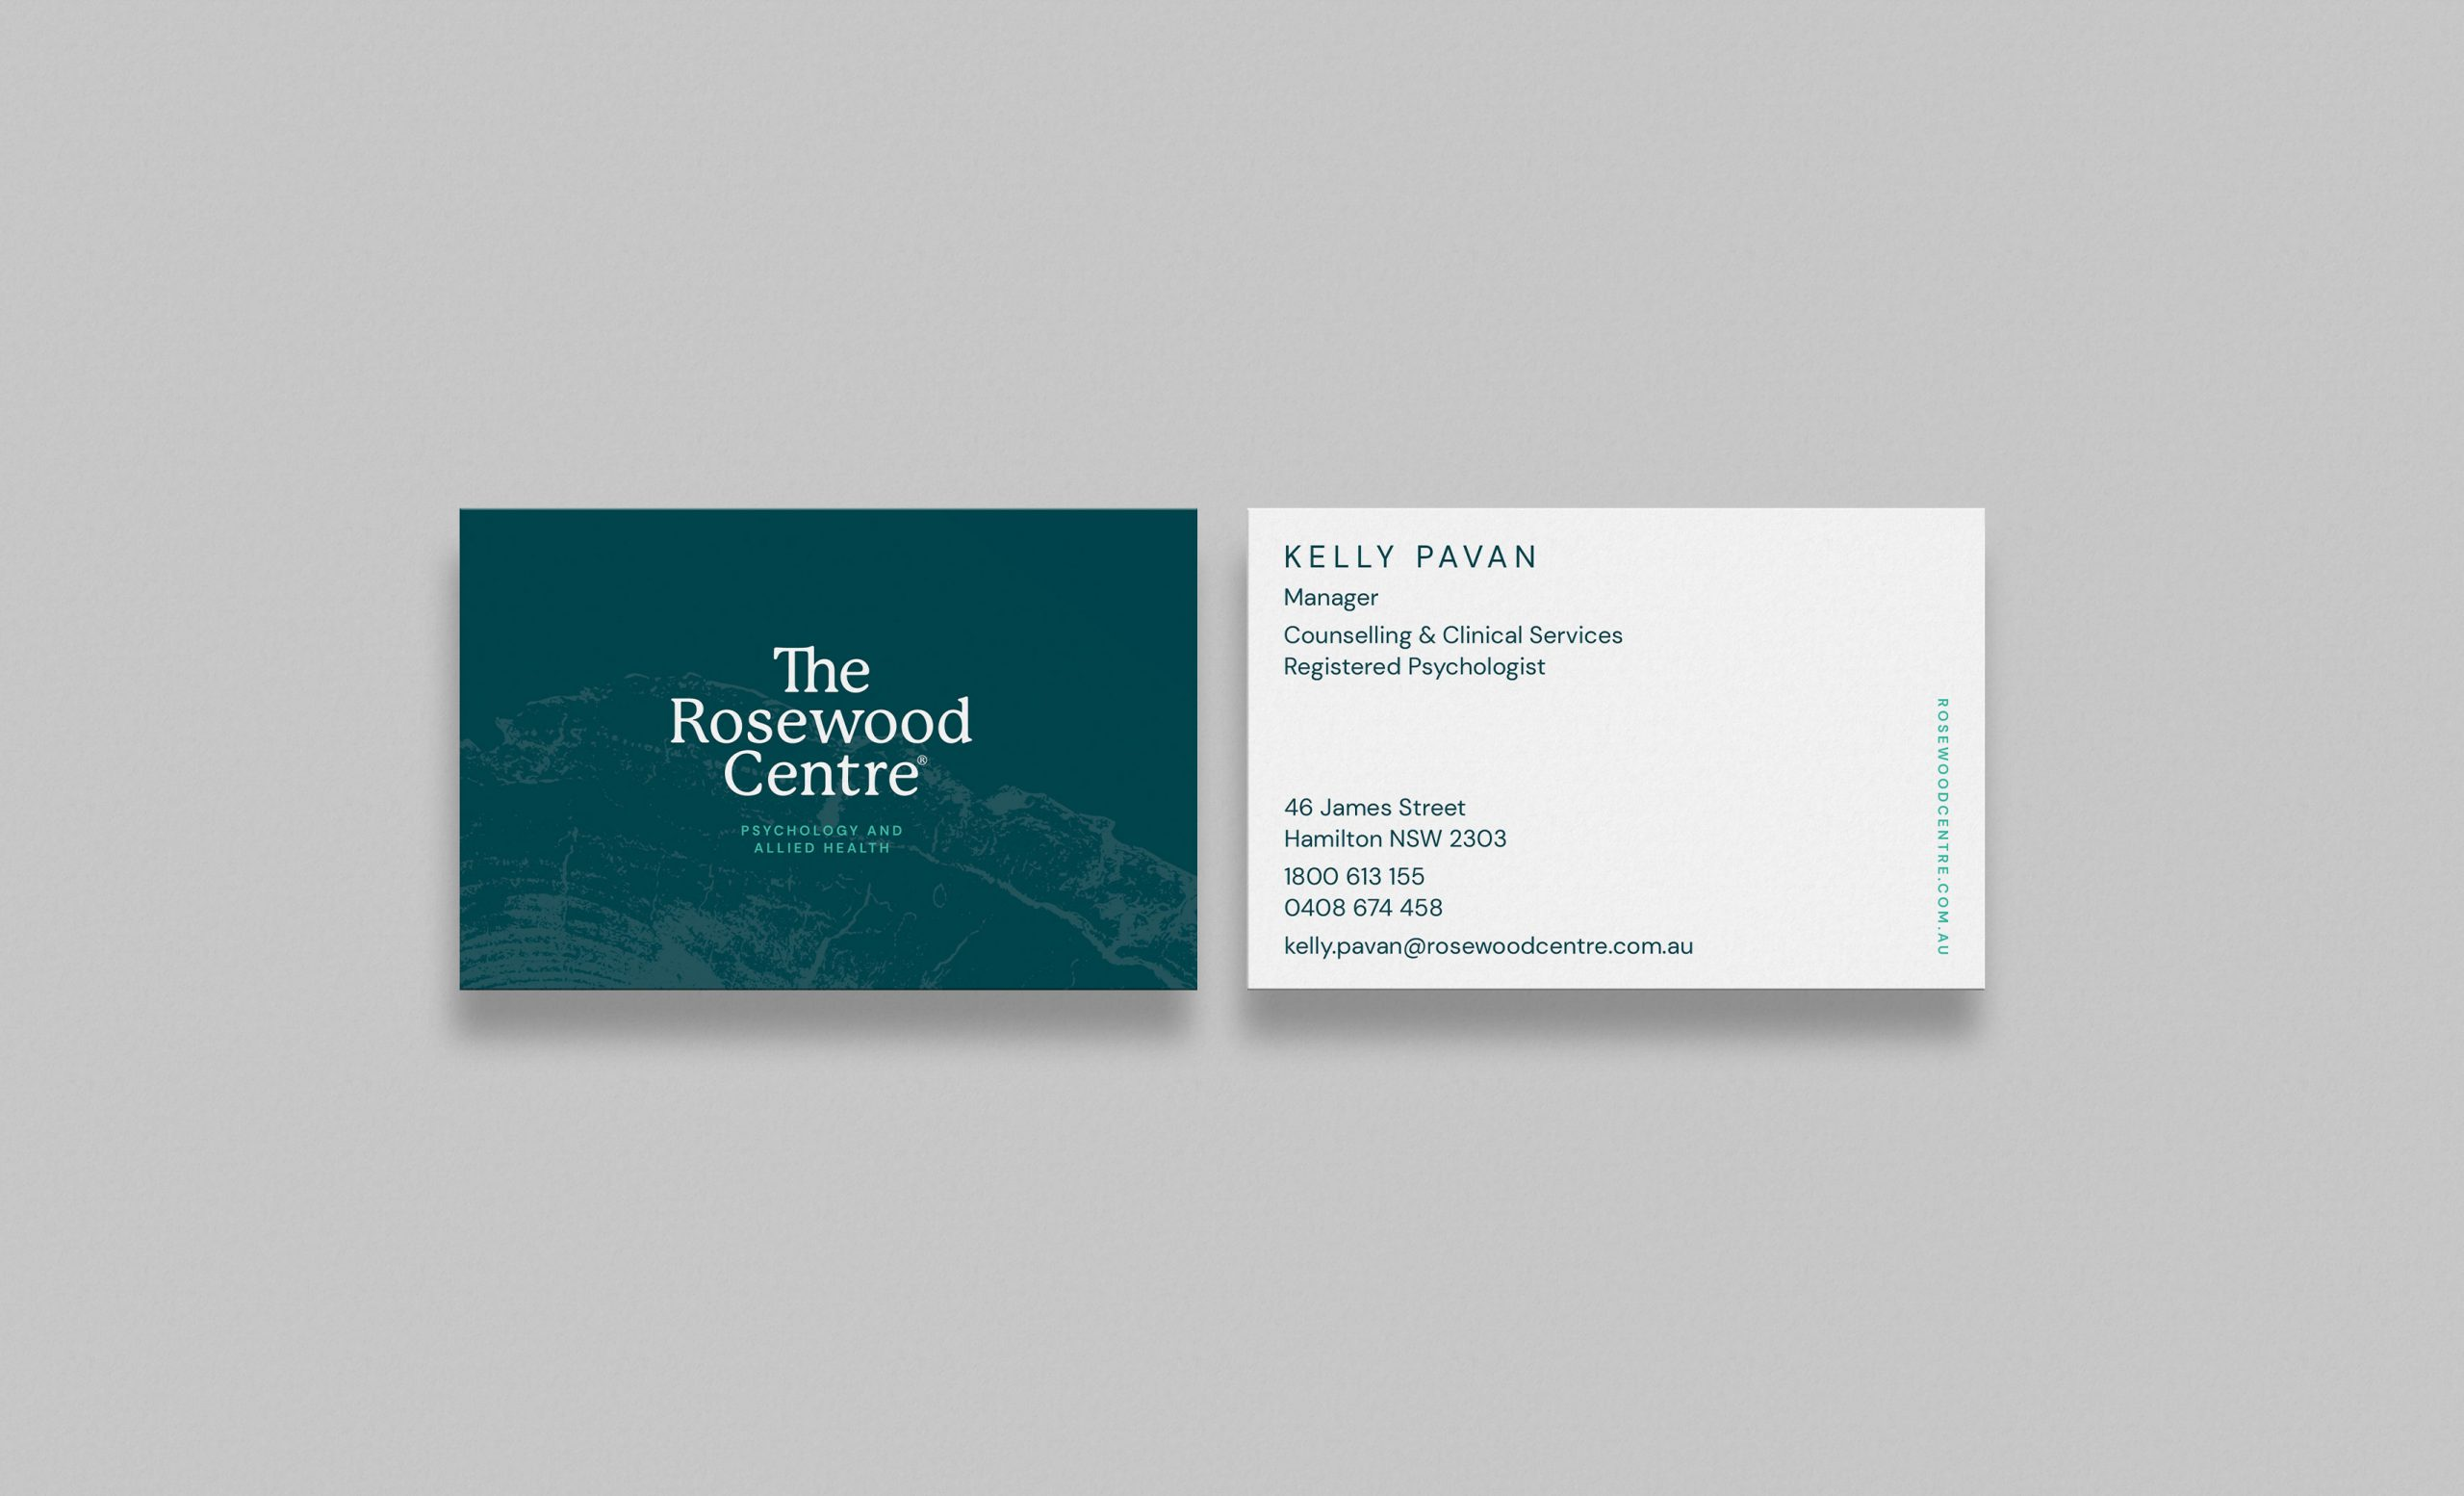 The Rosewood Centre Business Card